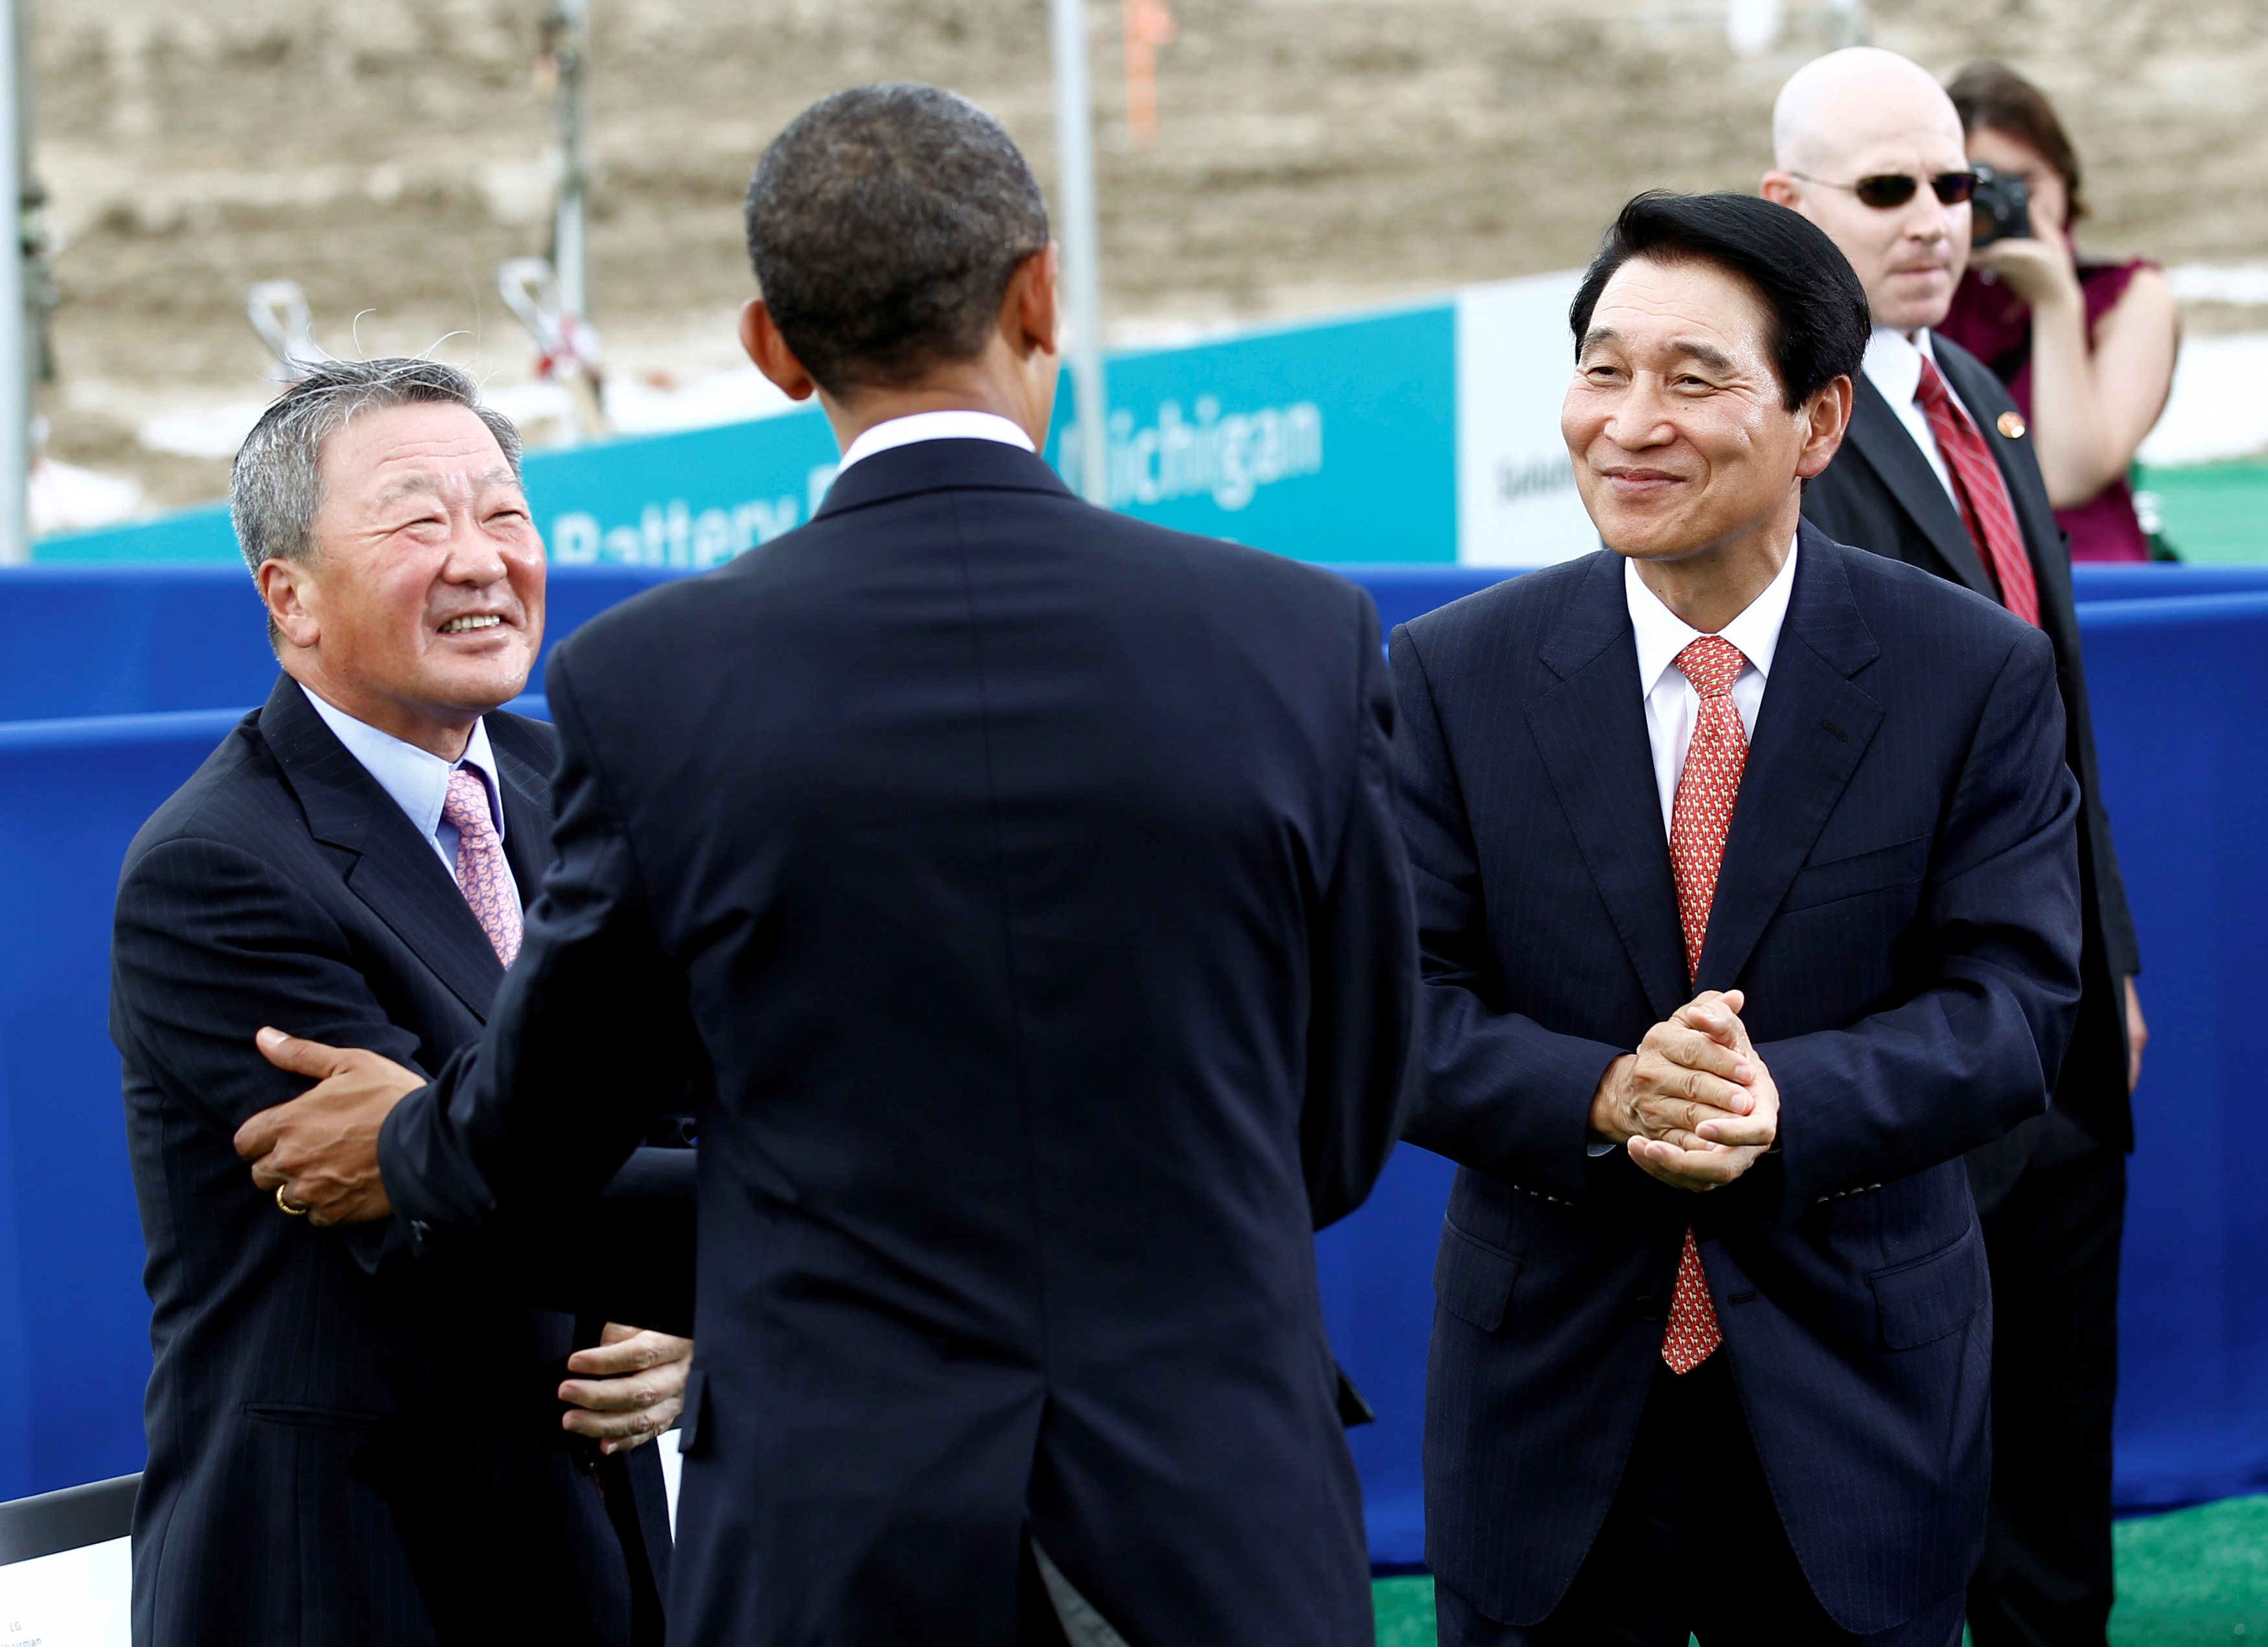 U.S. President Barack Obama greets LG Chem Chairman Bon-Moo Koo (L) and Vice Chairman and CEO of LG Chem Peter Bahn-Suk Kim (R) as he attends the groundbreaking of a factory for Compact Power Inc. in Holland, Michigan July 15, 2010.  REUTERS/Kevin Lamarque/File Photo